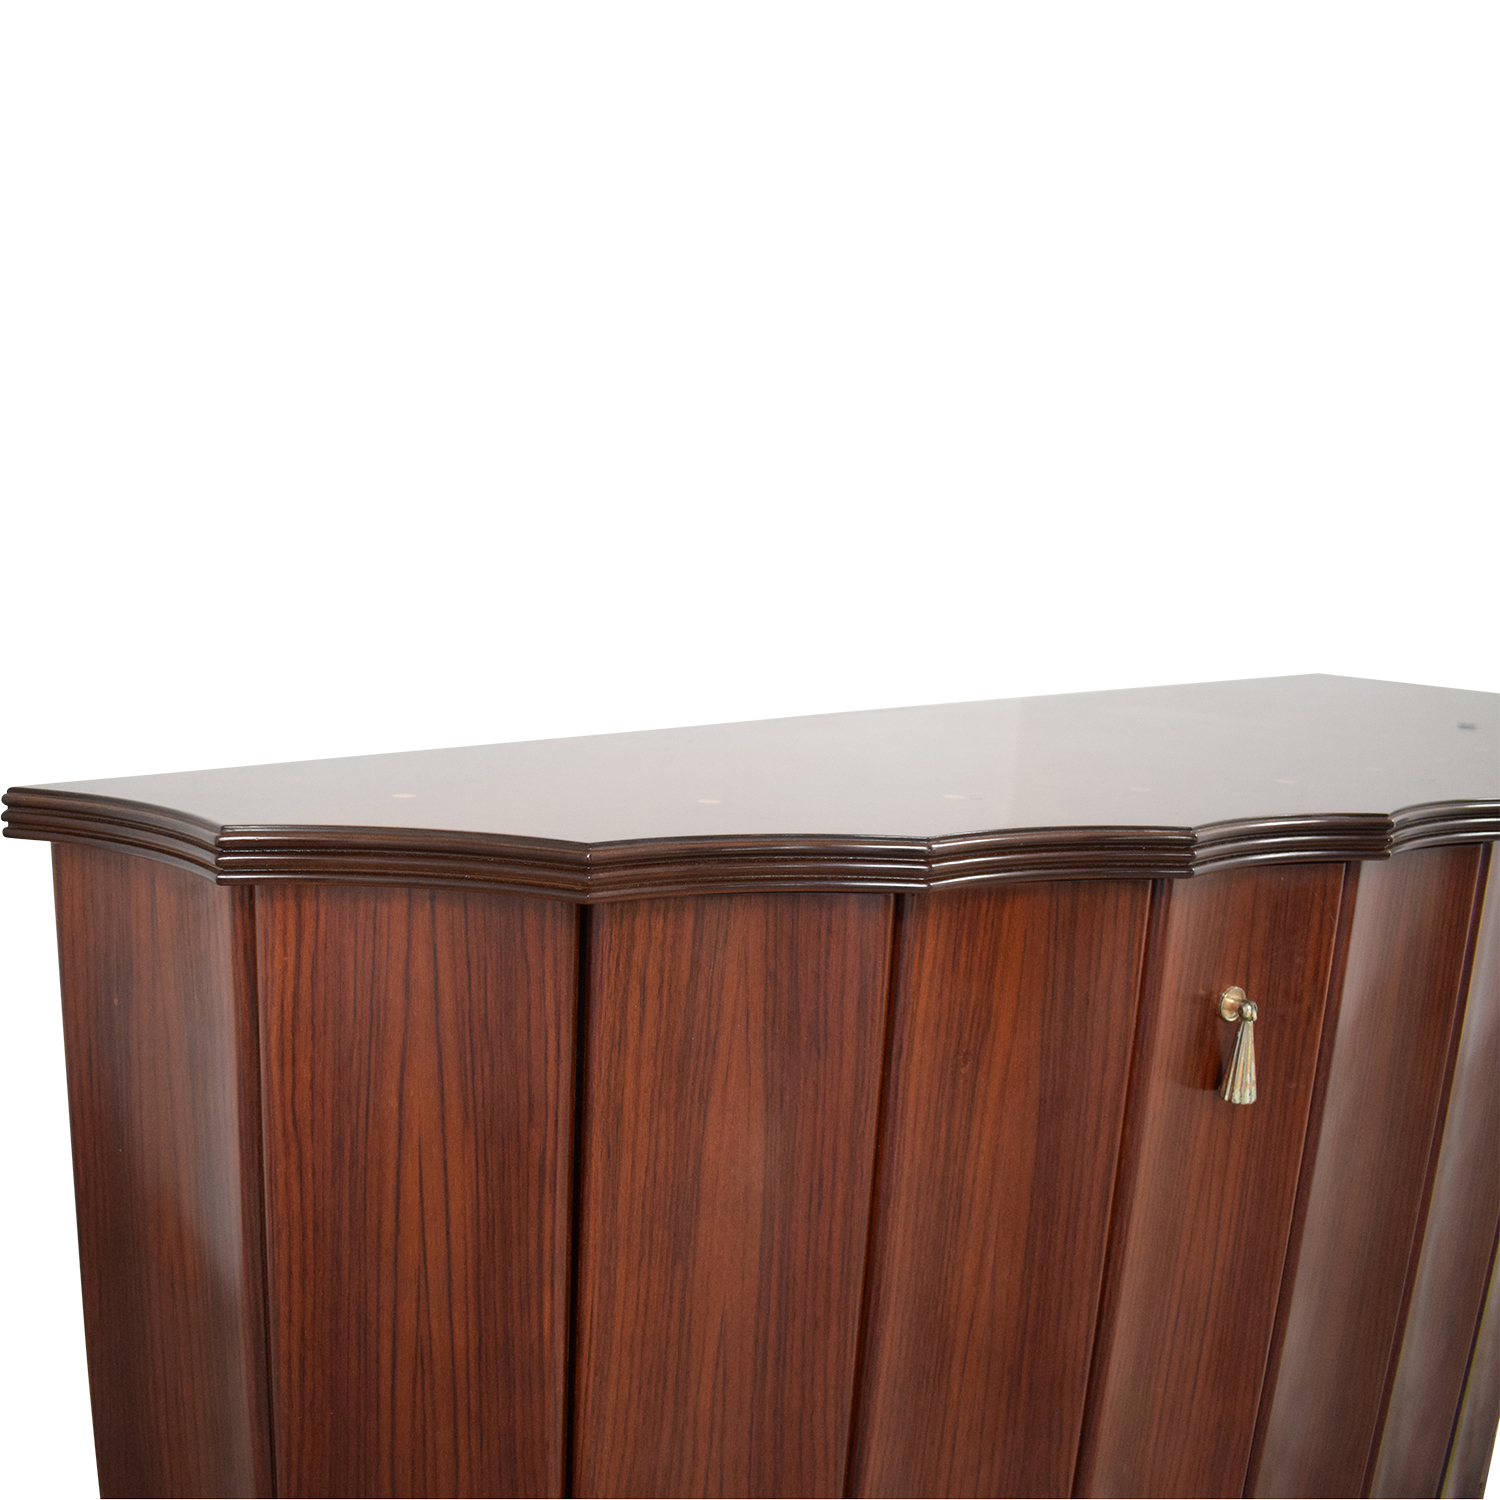 Four Door Cabinet Sideboard price